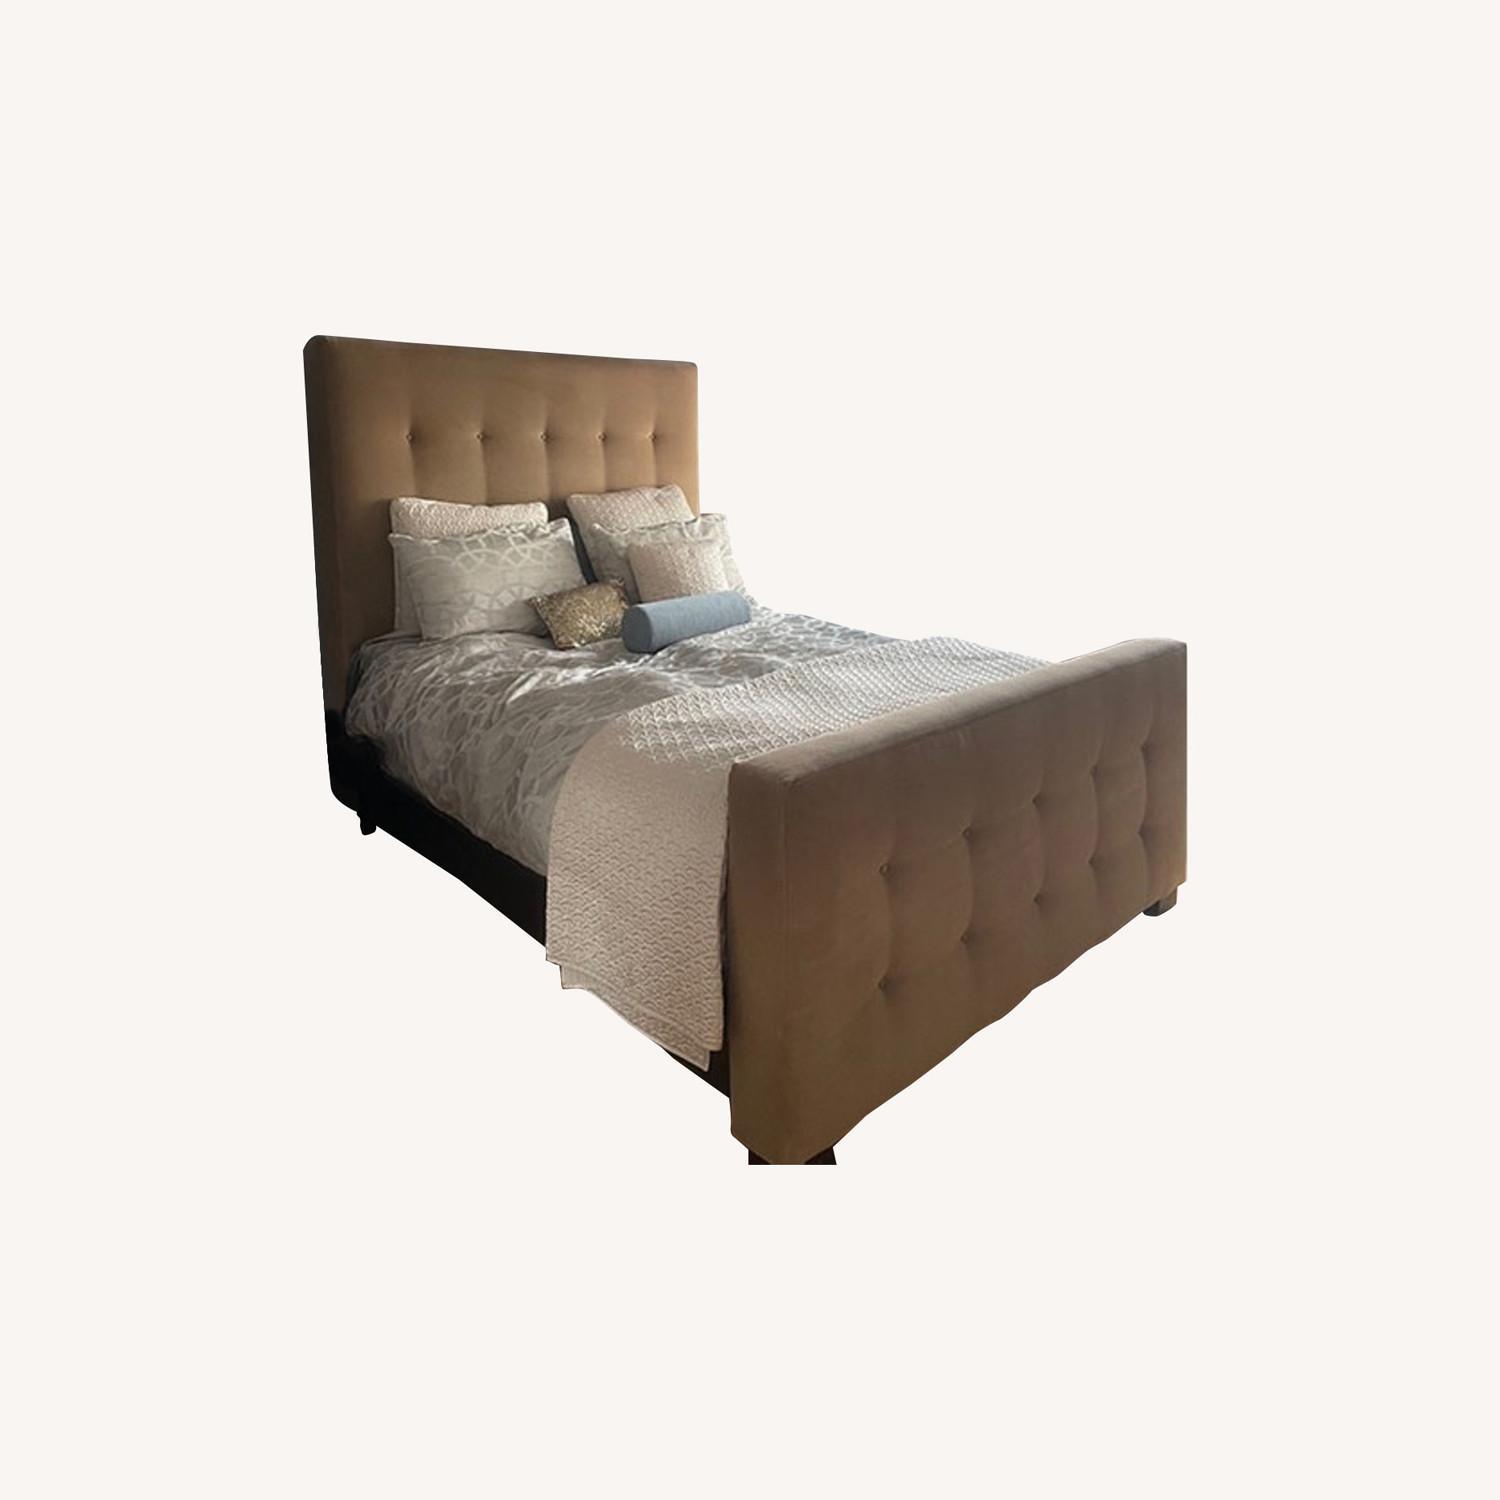 Mitchell Gold + Bob Williams Tufted Velvet Queen Bed - image-0